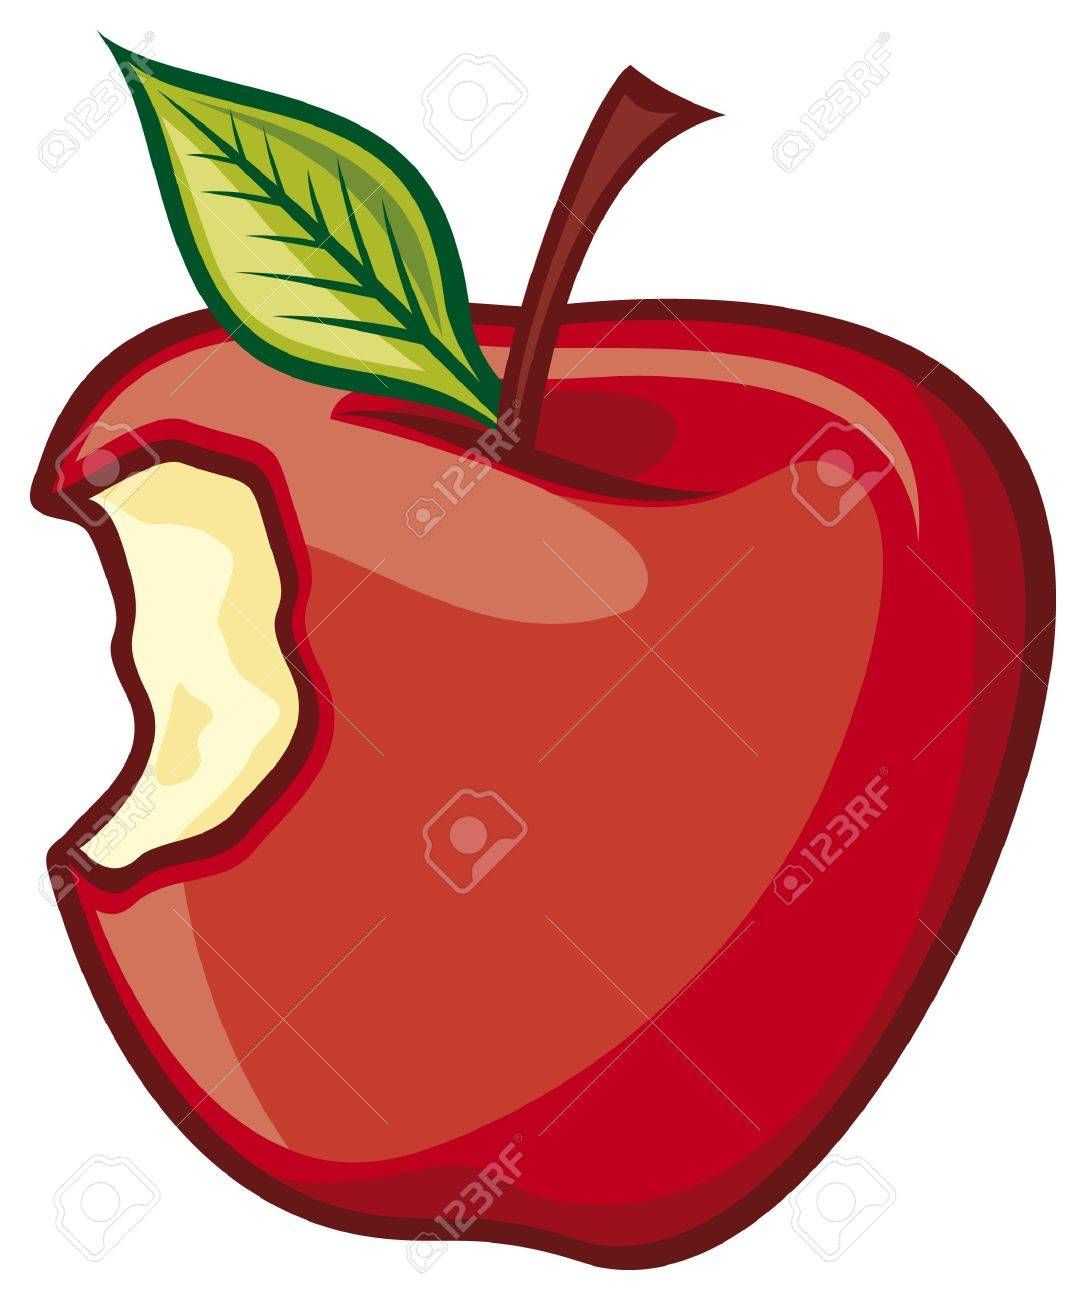 Apple clipart with a bite picture royalty free download Stock Vector | Apple Bites | Apple vector, Apple stock, Fresh apples picture royalty free download